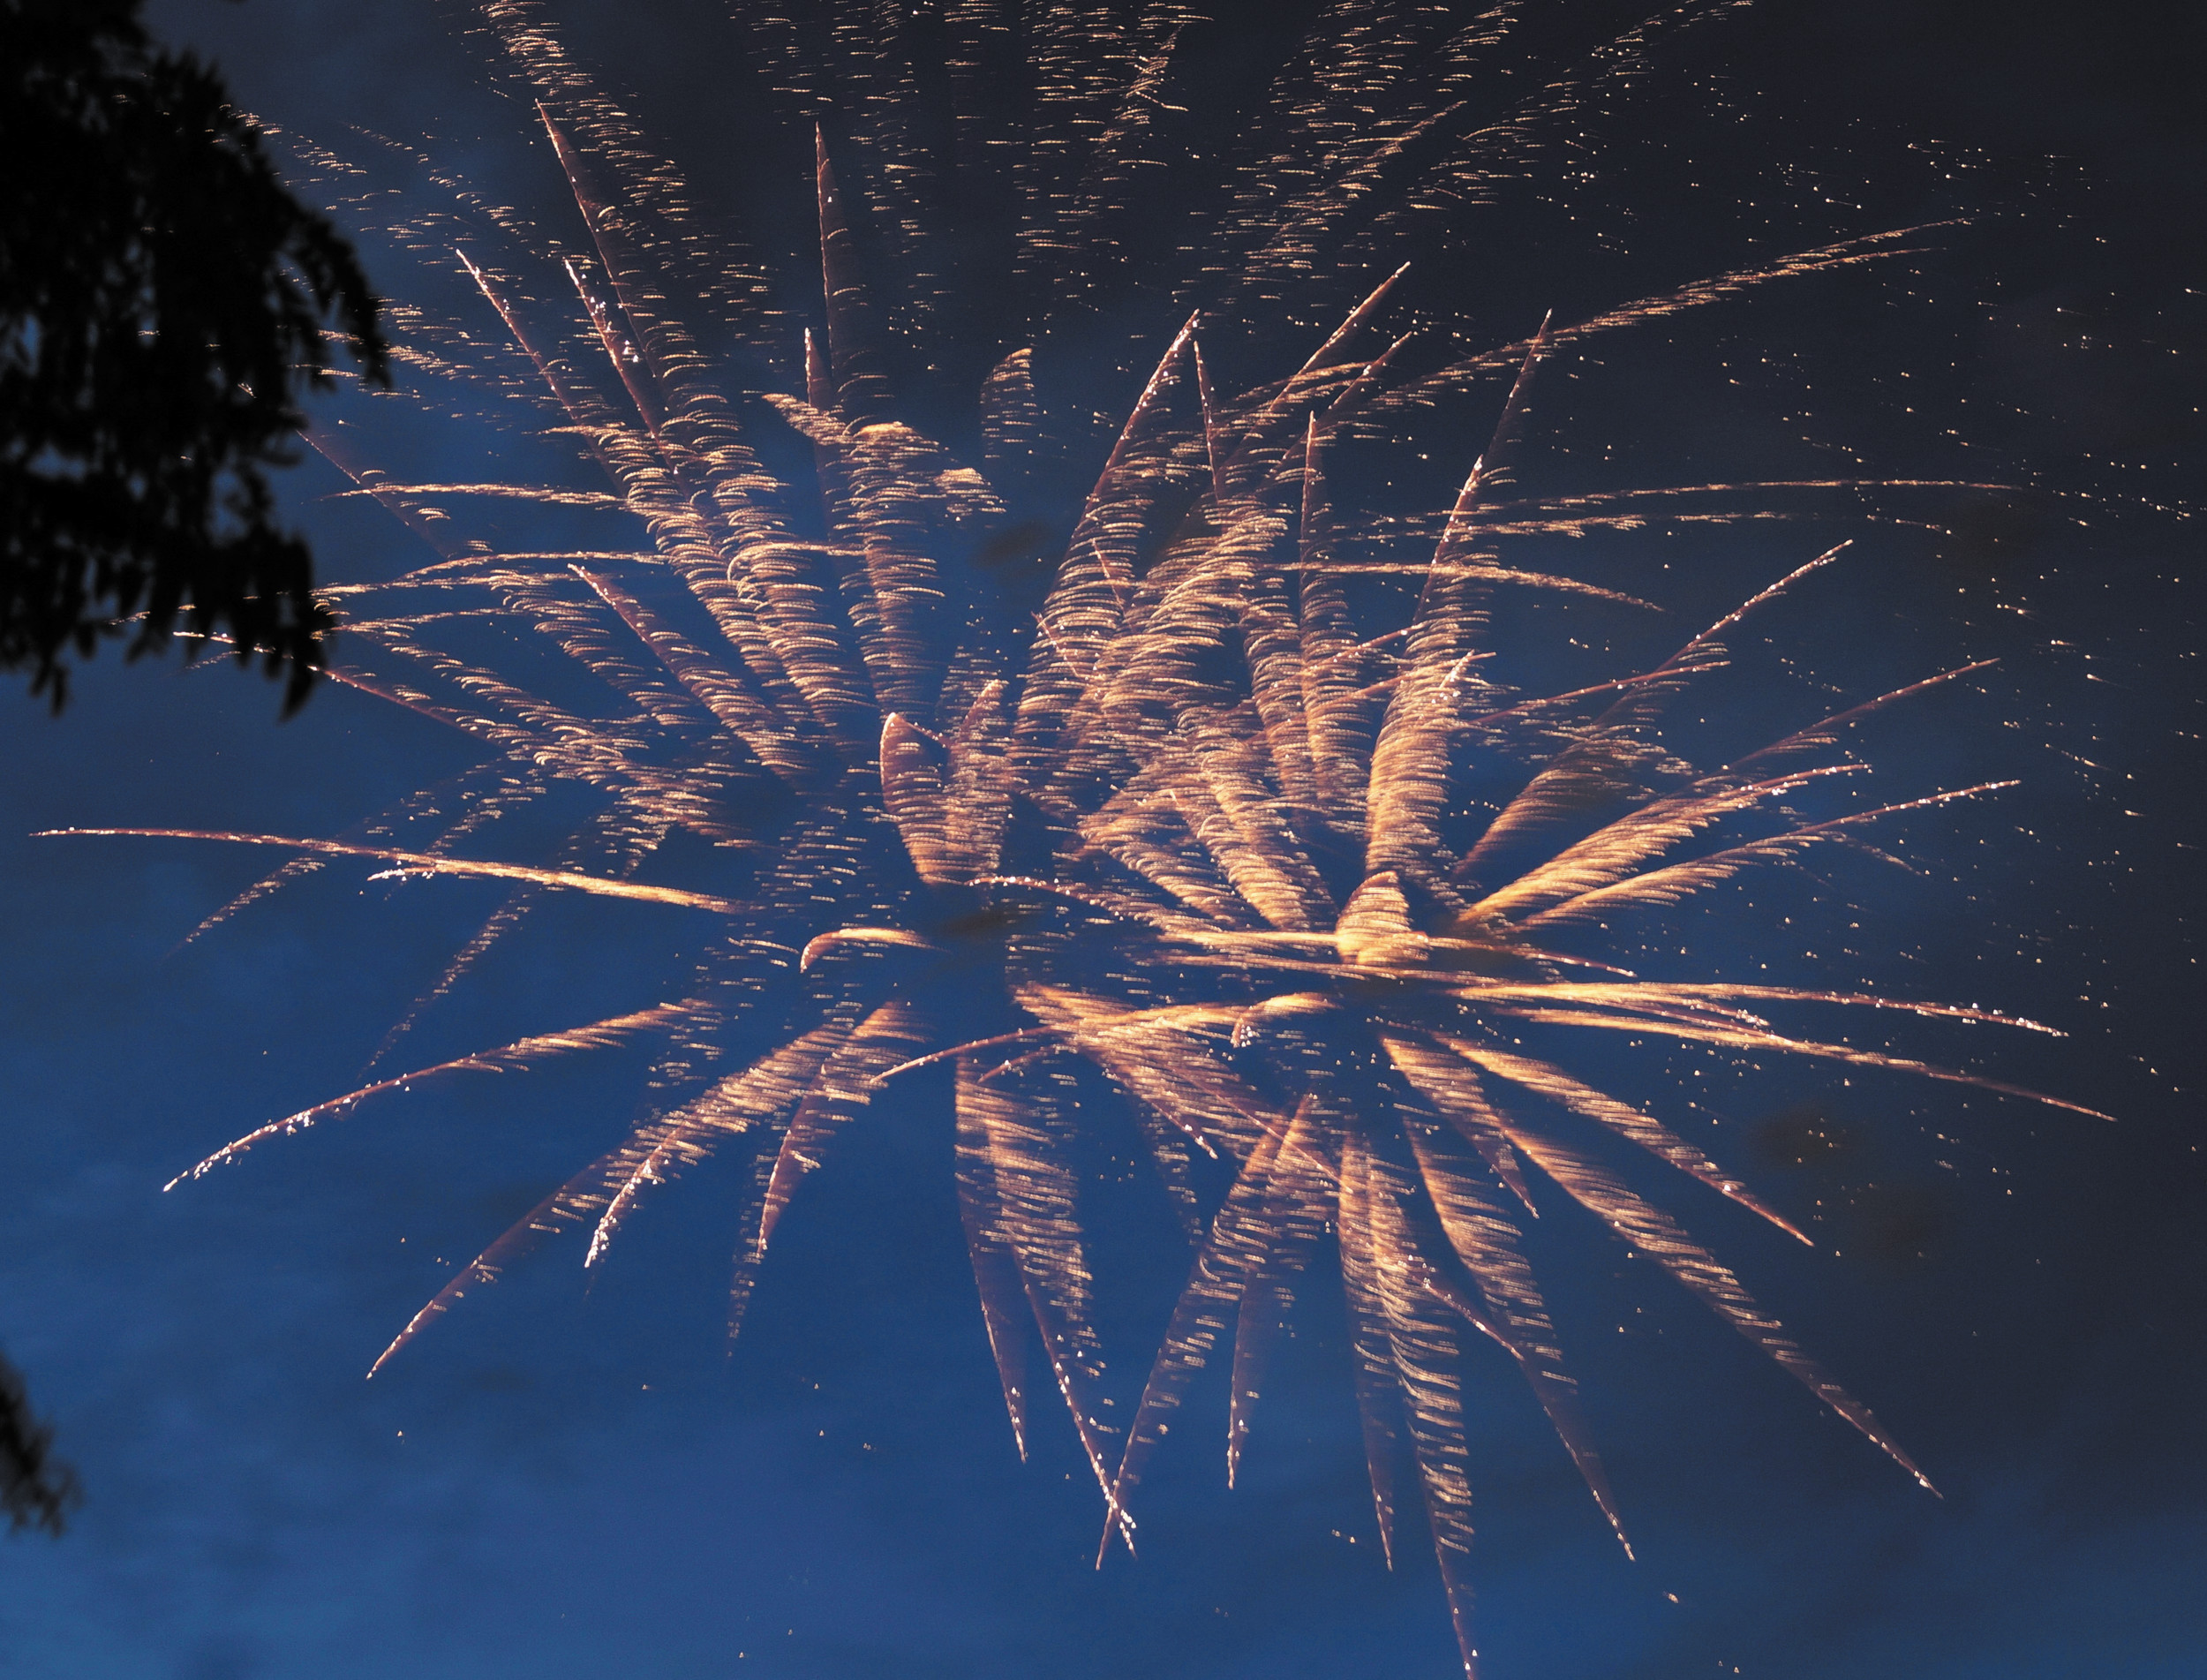 Fireworks filled the night sky above Sweetwater Park in Lone Tree on July 4. In the south metro area, there were plenty of professional fireworks displays like this one, but there were also many complaints of illegal displays in neighborhoods.